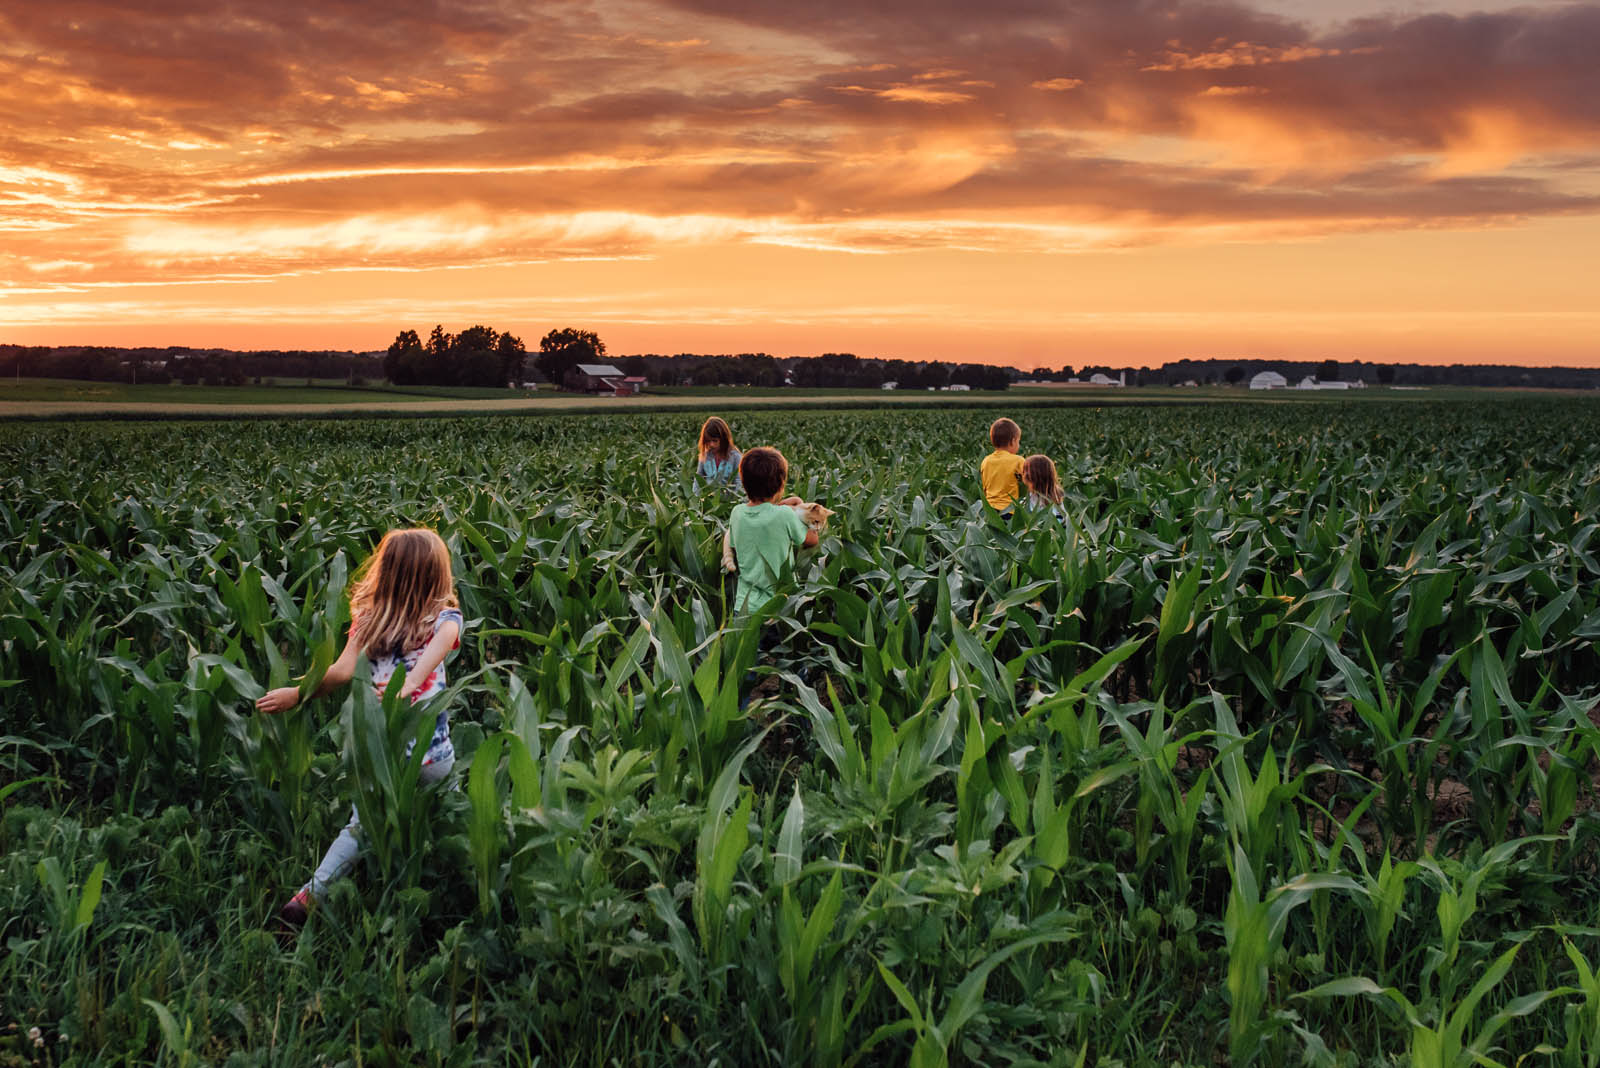 picture o fkids running through a field at sunset by Susan Grimes